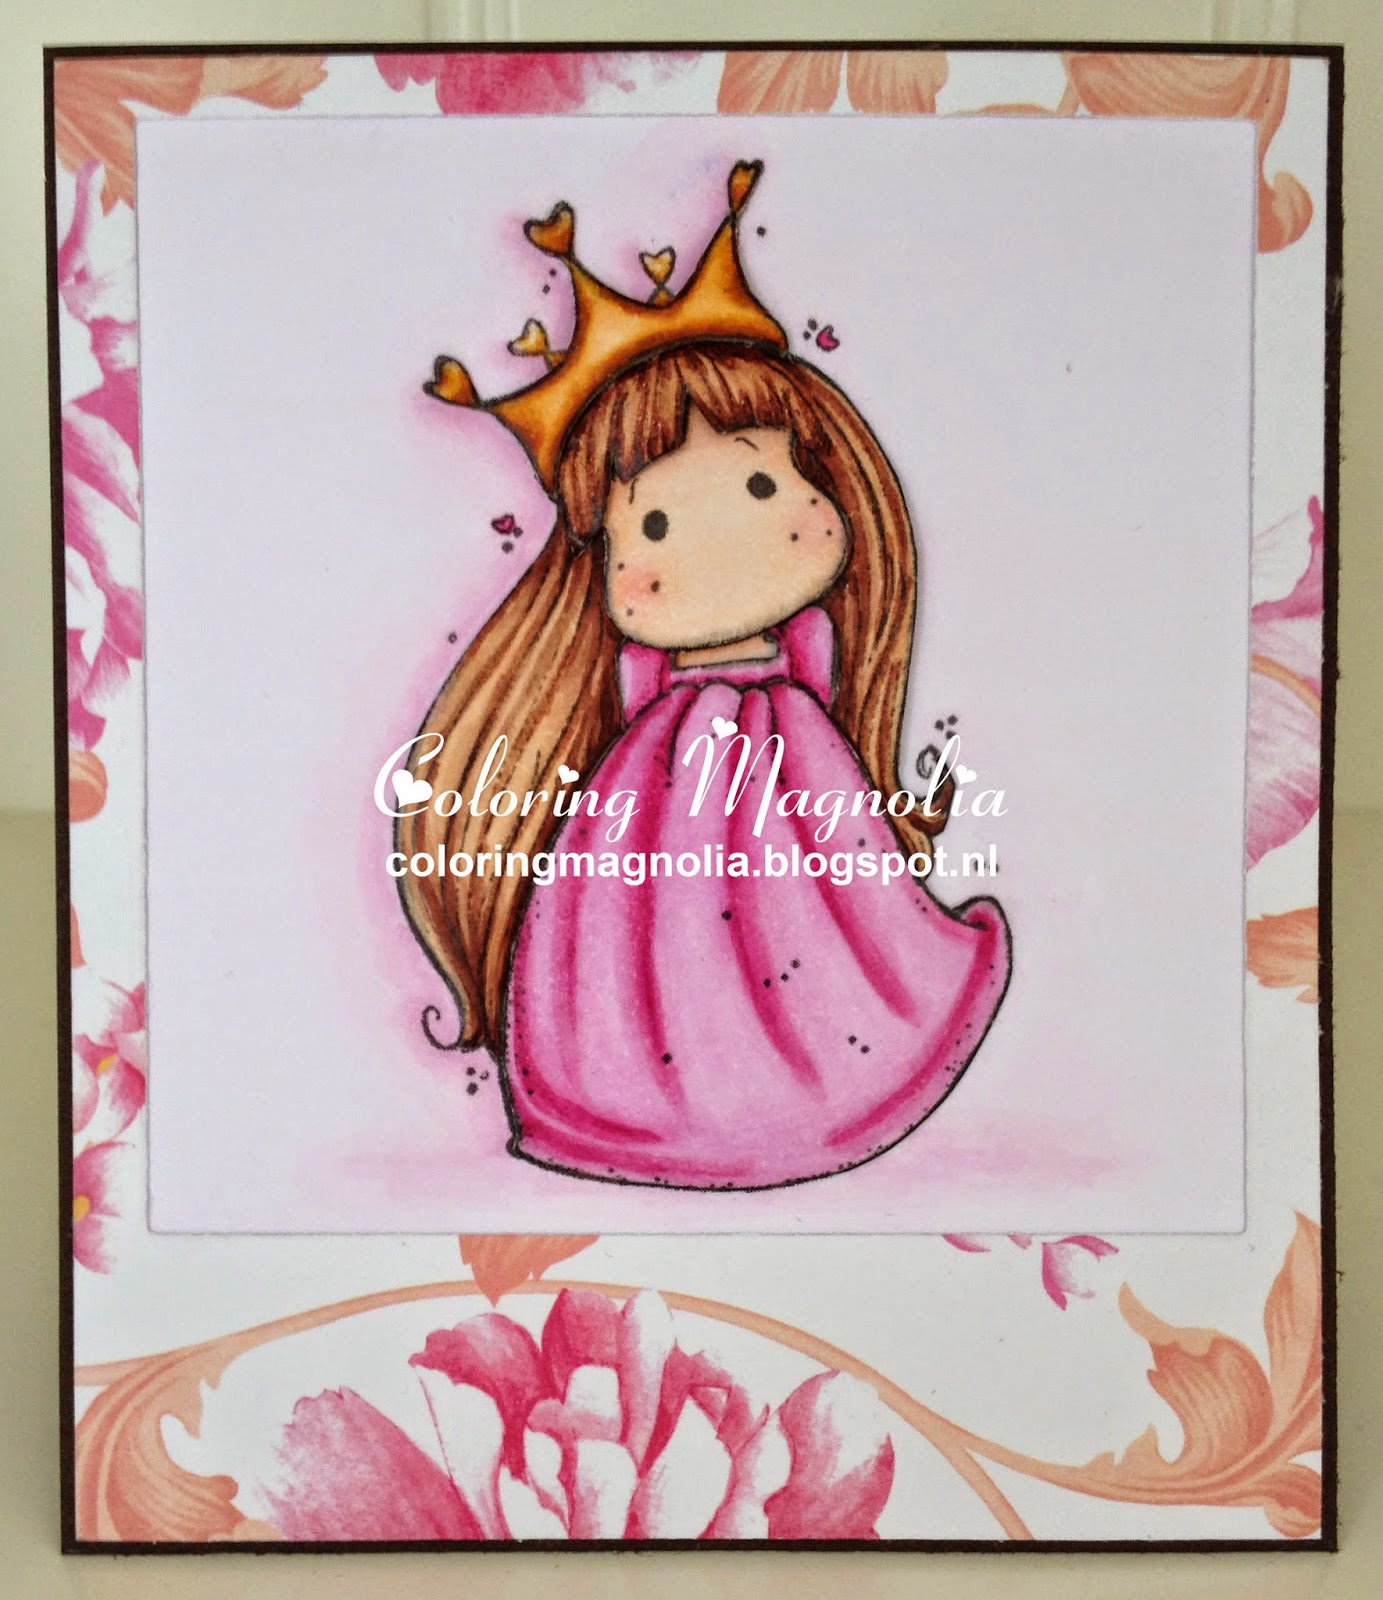 Coloring Magnolia Stamp 2013 Once Upon A Time Collection - Tilda In Cotton Dress - 3D Paper Piecing Card